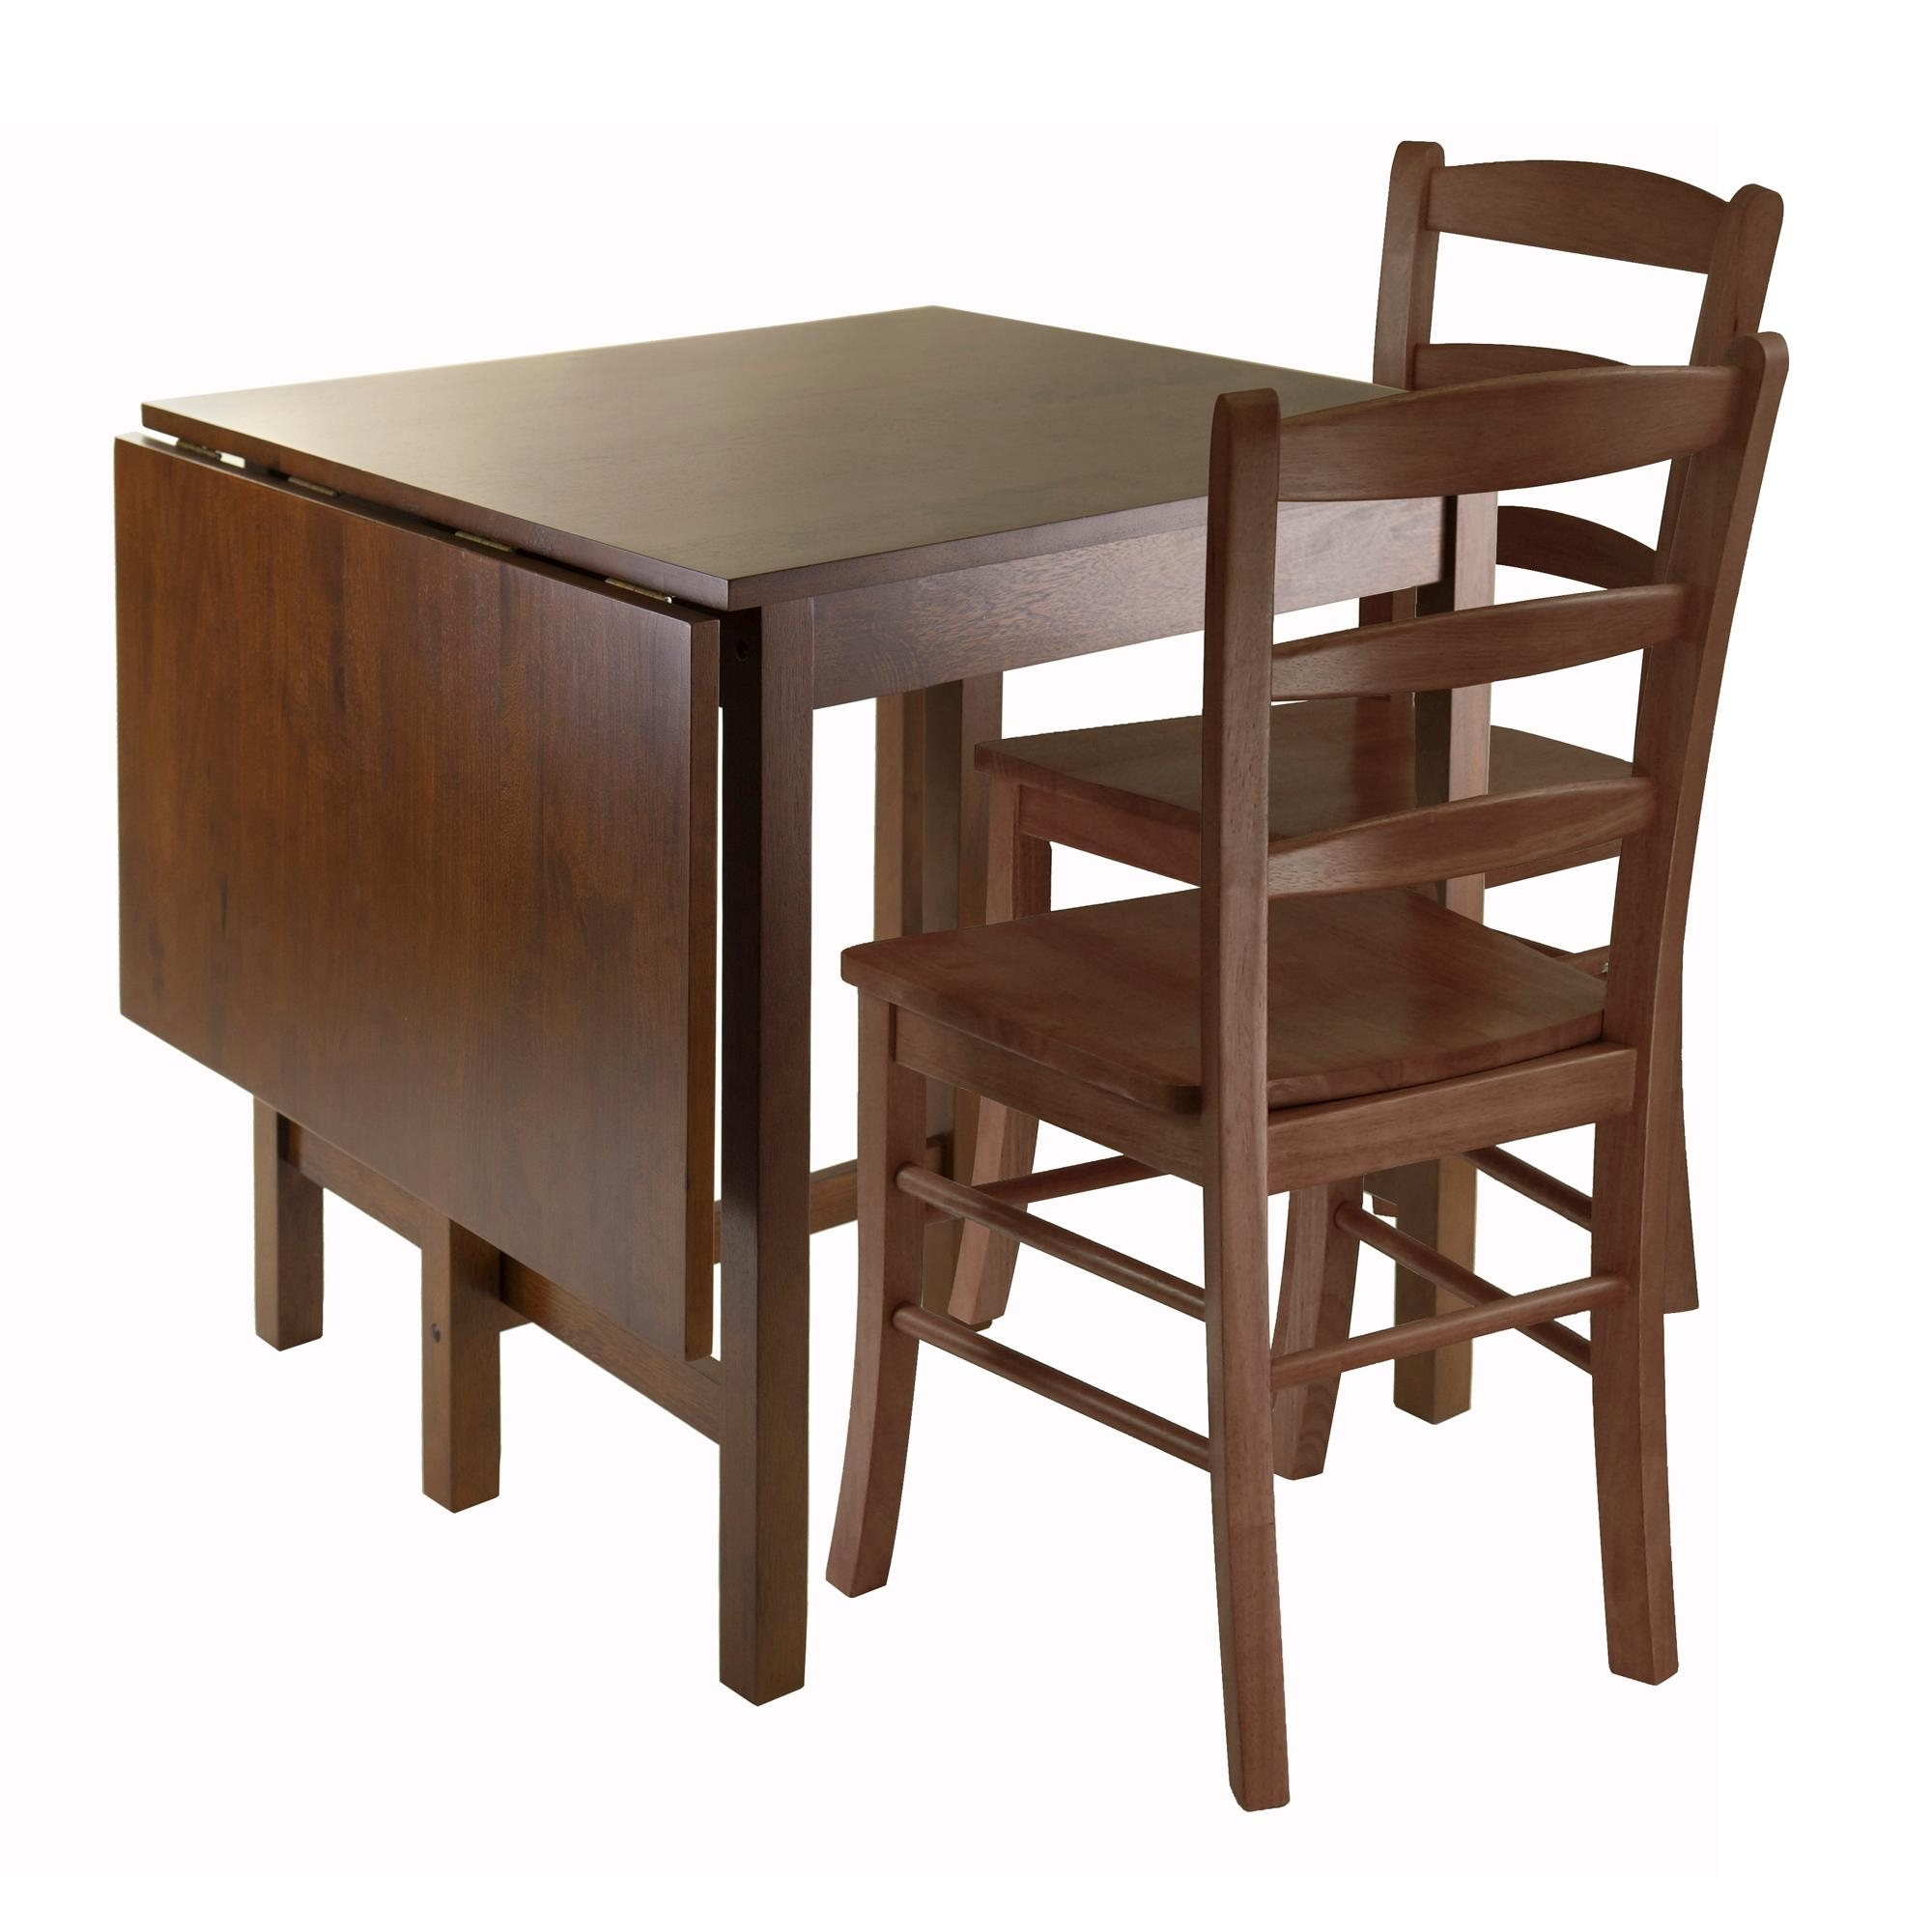 Dining Tables For Two intended for 2018 Amazon - Winsome Lynden 3-Piece Dining Table With 2-Ladder Back